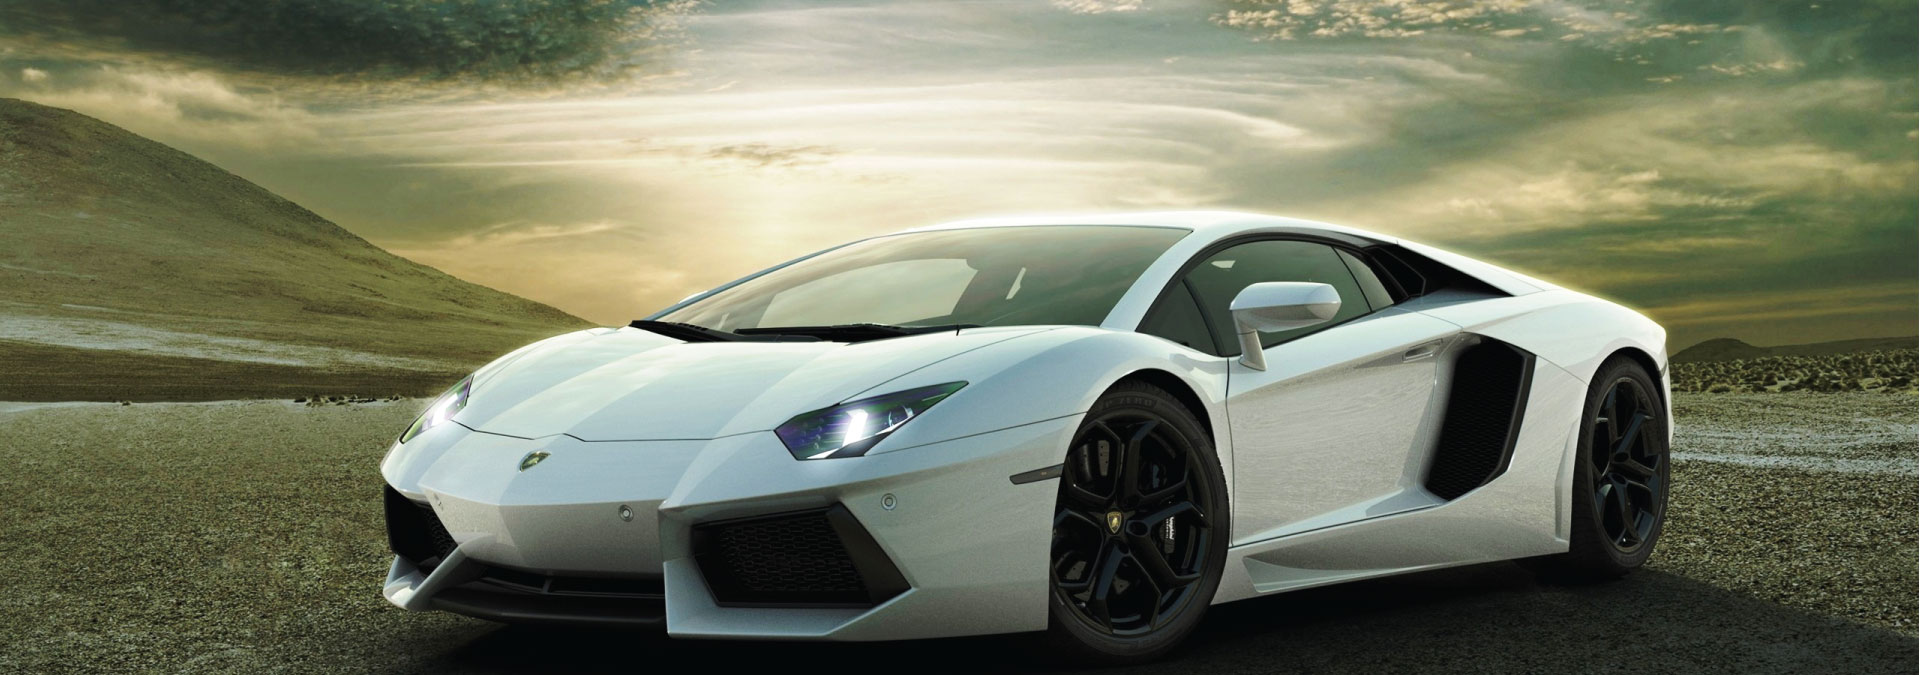 lamborghini aventador tuning ECU and exhaust volume